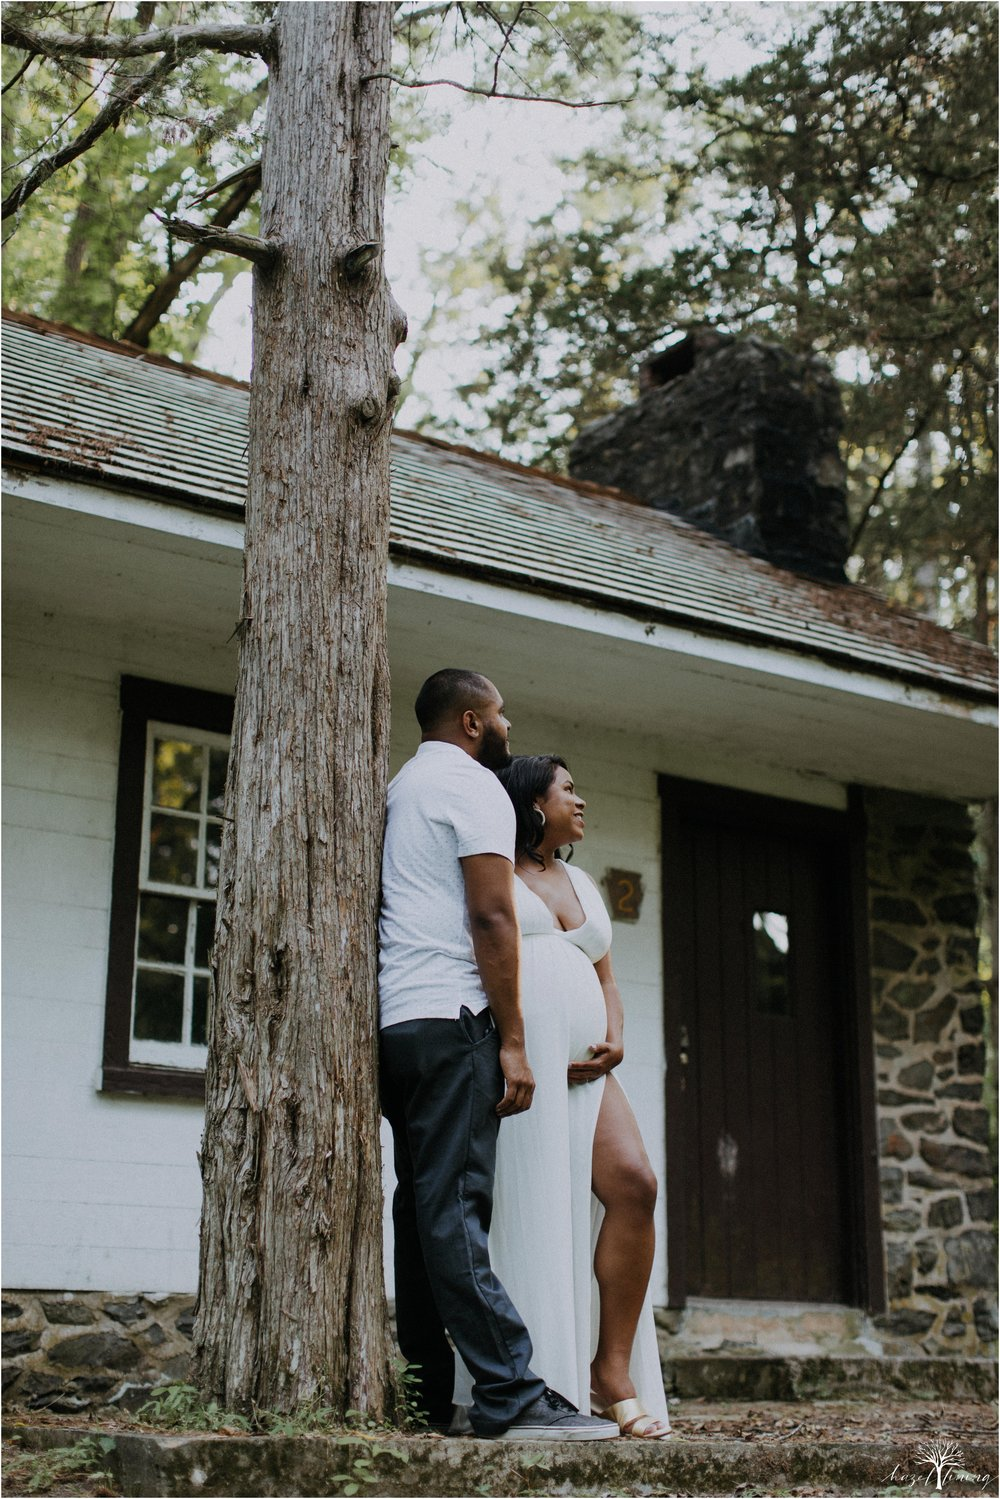 hazel-lining-photography-destination--elopement-wedding-engagement-photography-year-in-review_0010.jpg